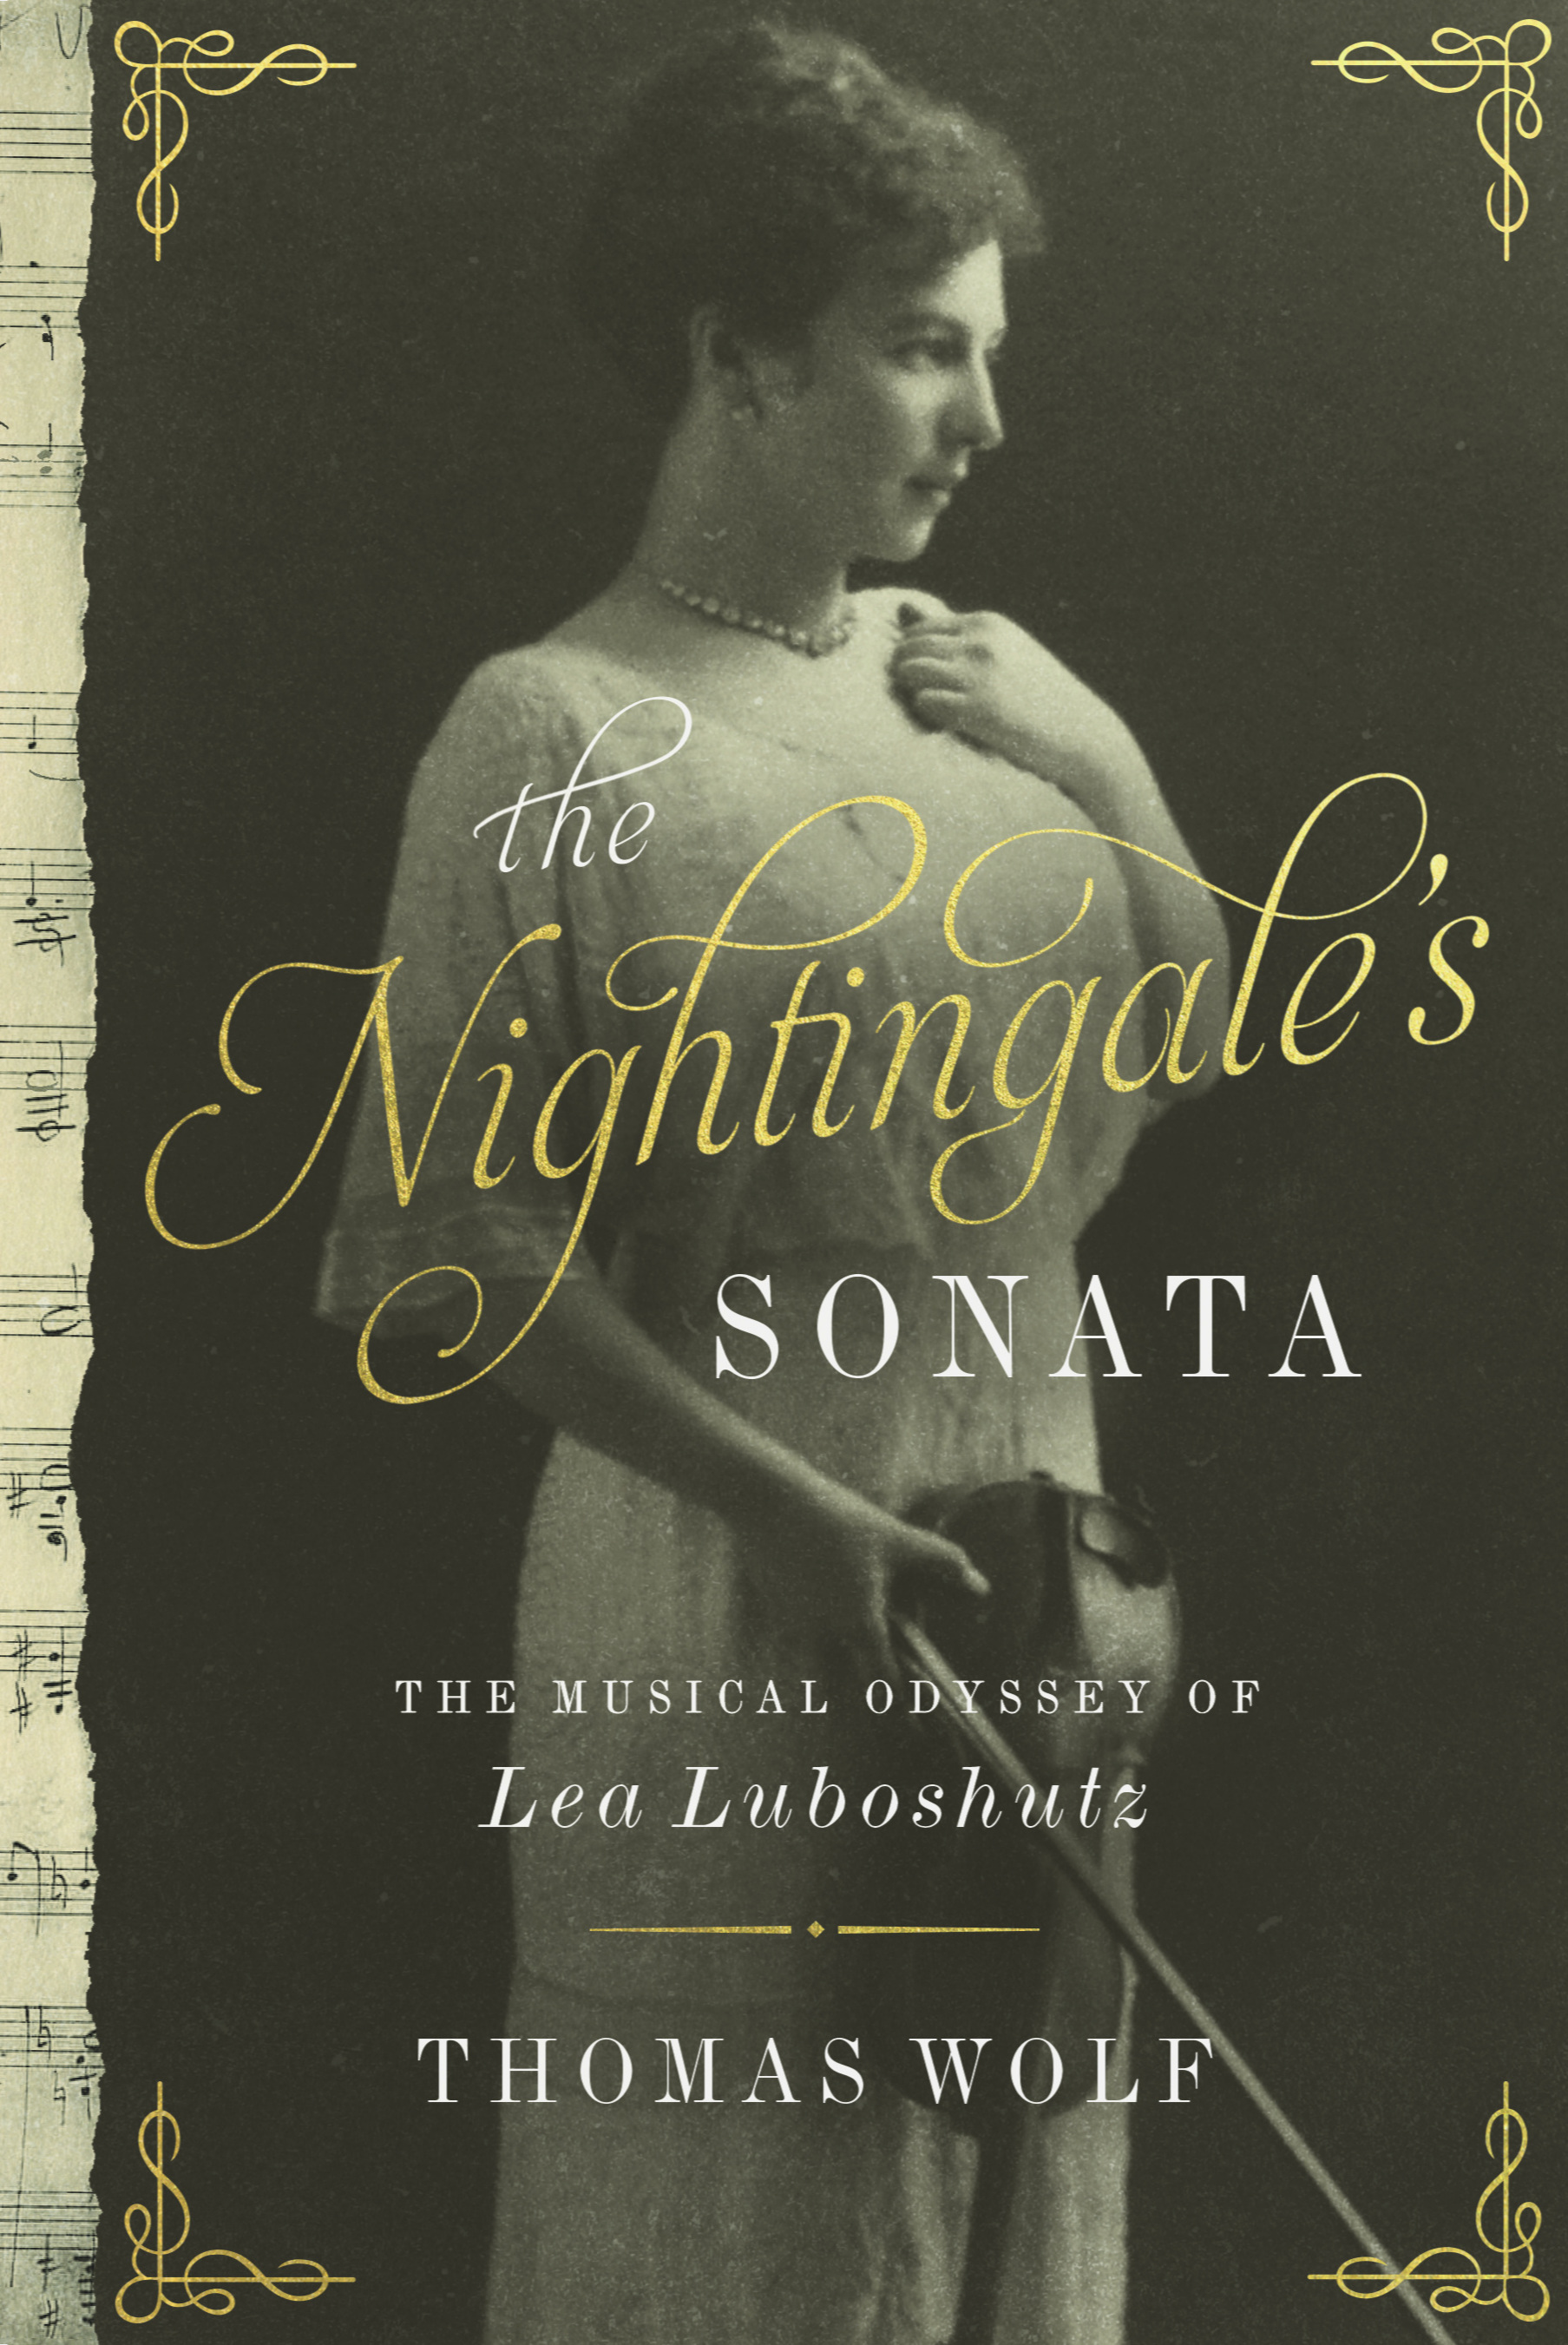 The Nightingale's Sonata: The Musical Odyssey of Lea Luboshutz by Thomas Wolf.    Publisher: Pegasus Books. Publication date: June 4, 2019. ISBN: 978-1-64313-067-5. $27.95 U.S. | $36.95 Canada; Hardcover: 366 pages; 16 pages of B&W photographs. Language: English.  Available where all fine books are sold.